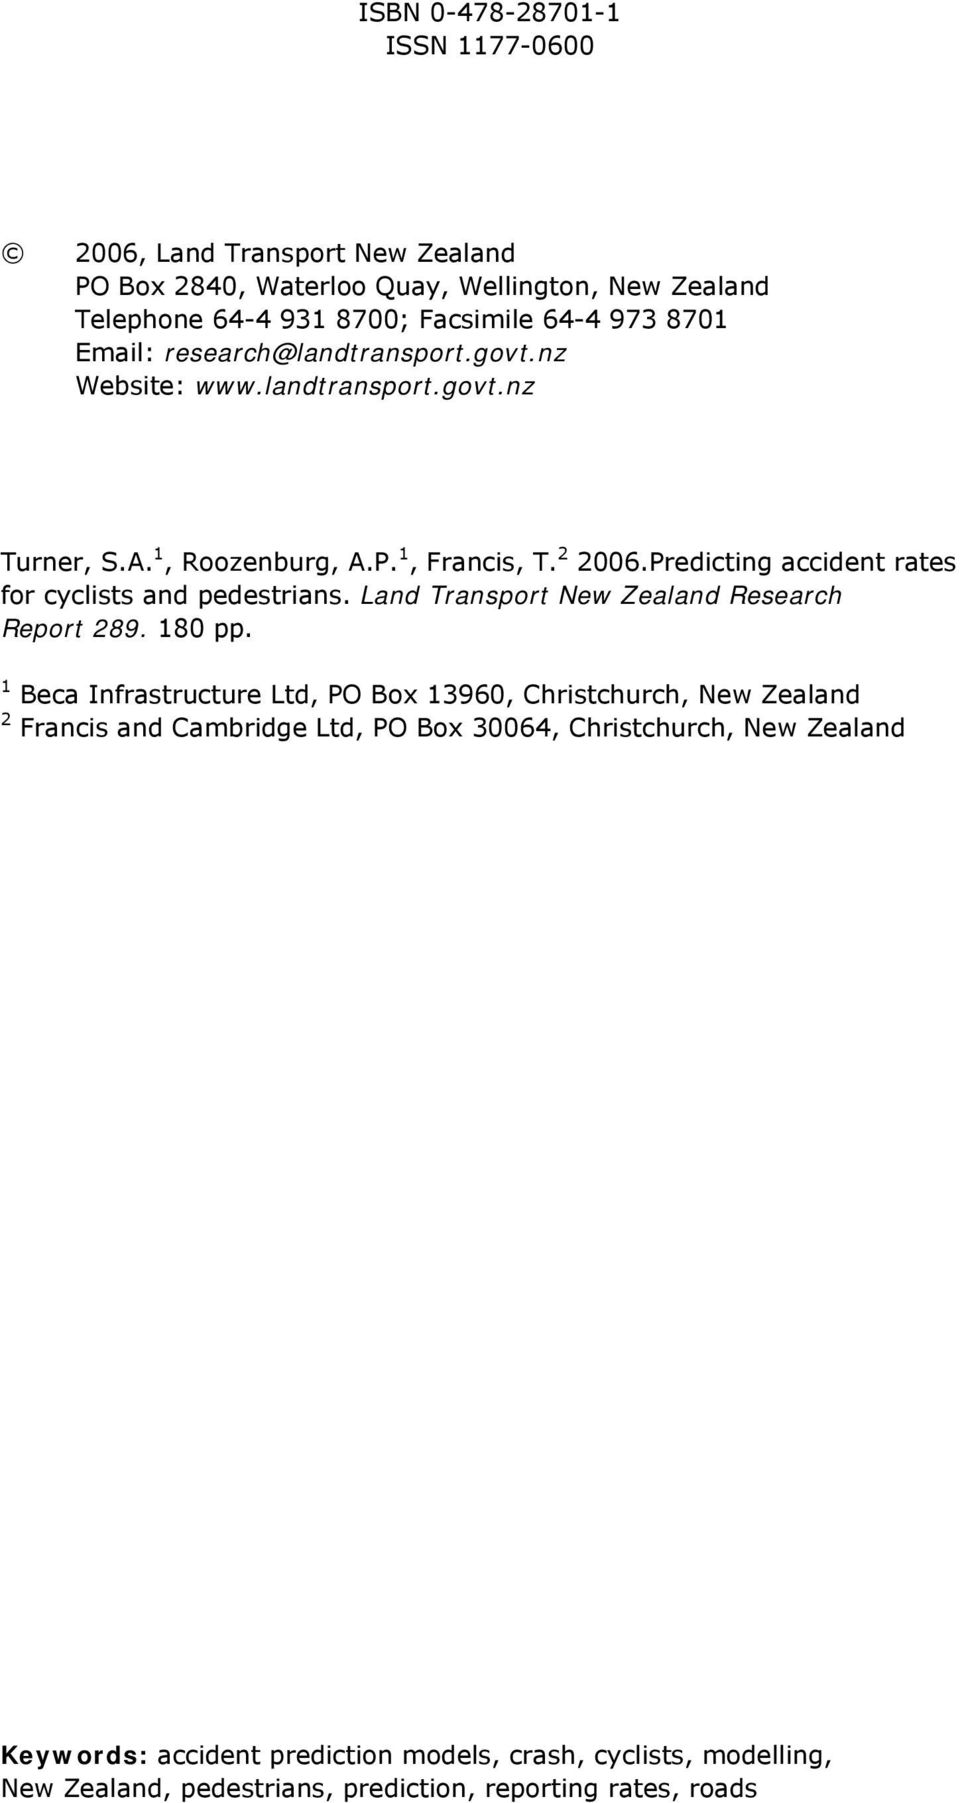 Predicting accident rates for cyclists and pedestrians. Land Transport New Zealand Research Report 289. 180 pp.